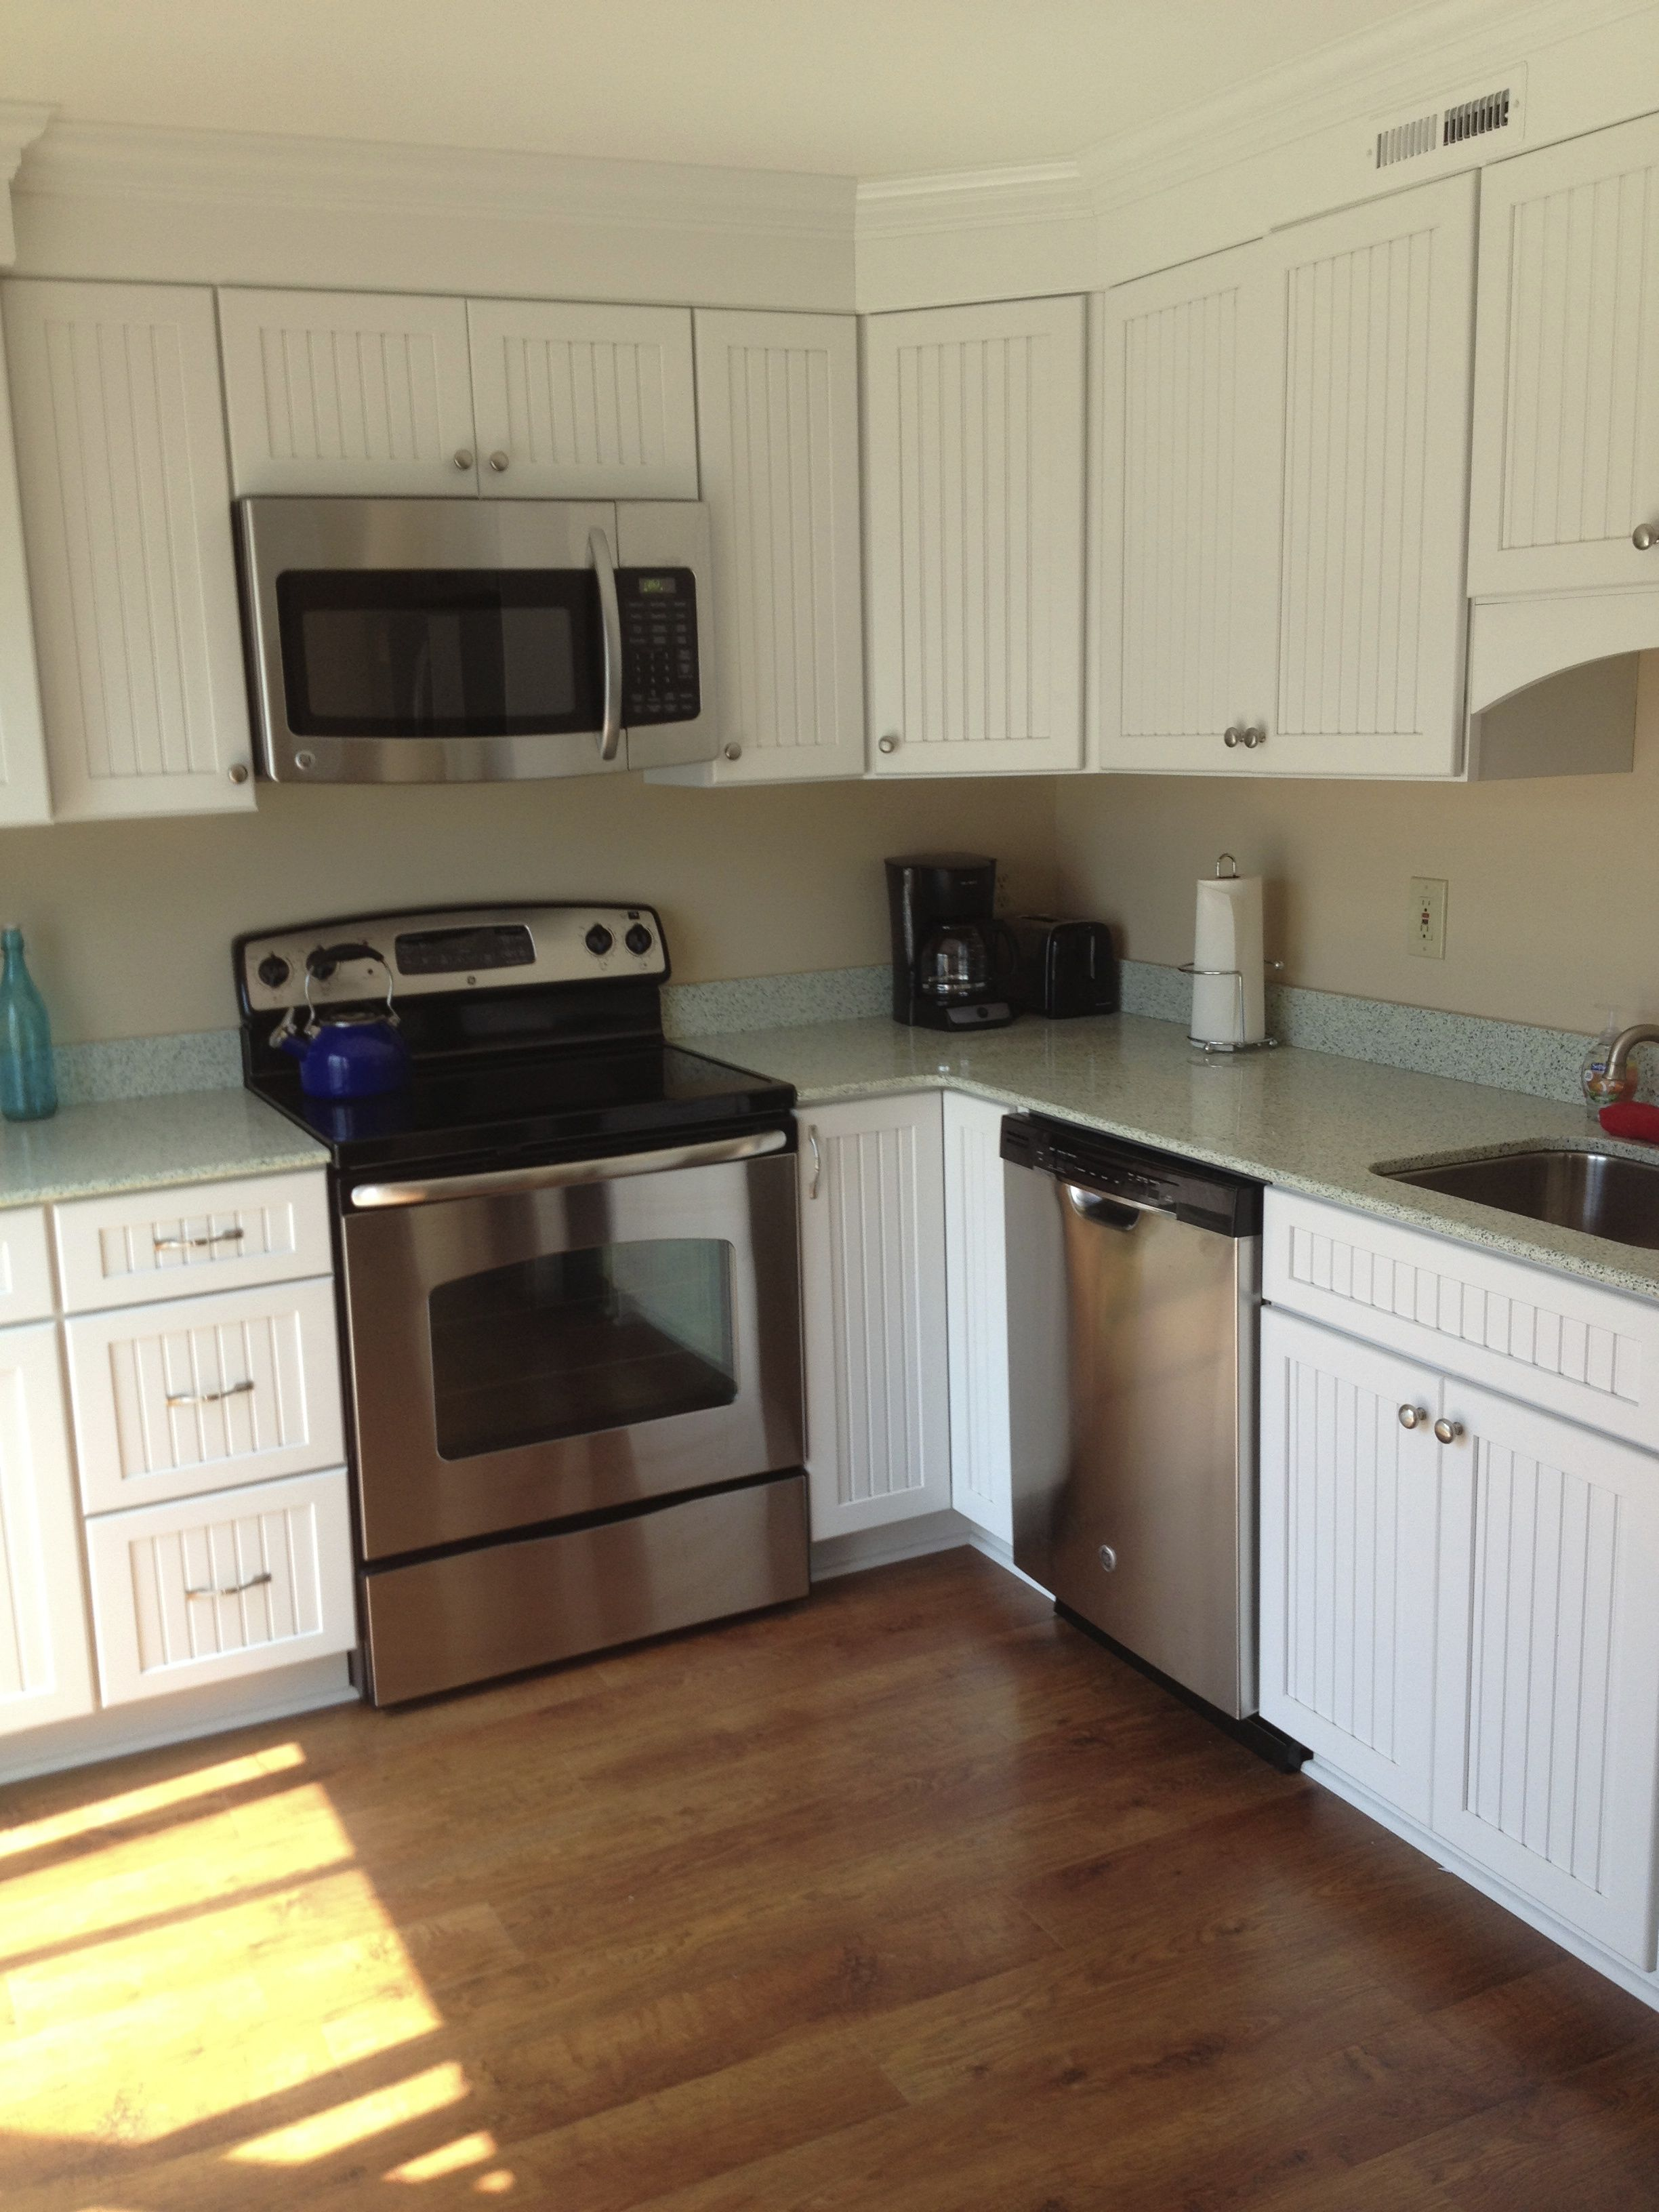 Awesome Kraftmaid Wilmington Cabinets With GEOS Auckland Countertops | Rebuilding |  Pinterest | Countertops